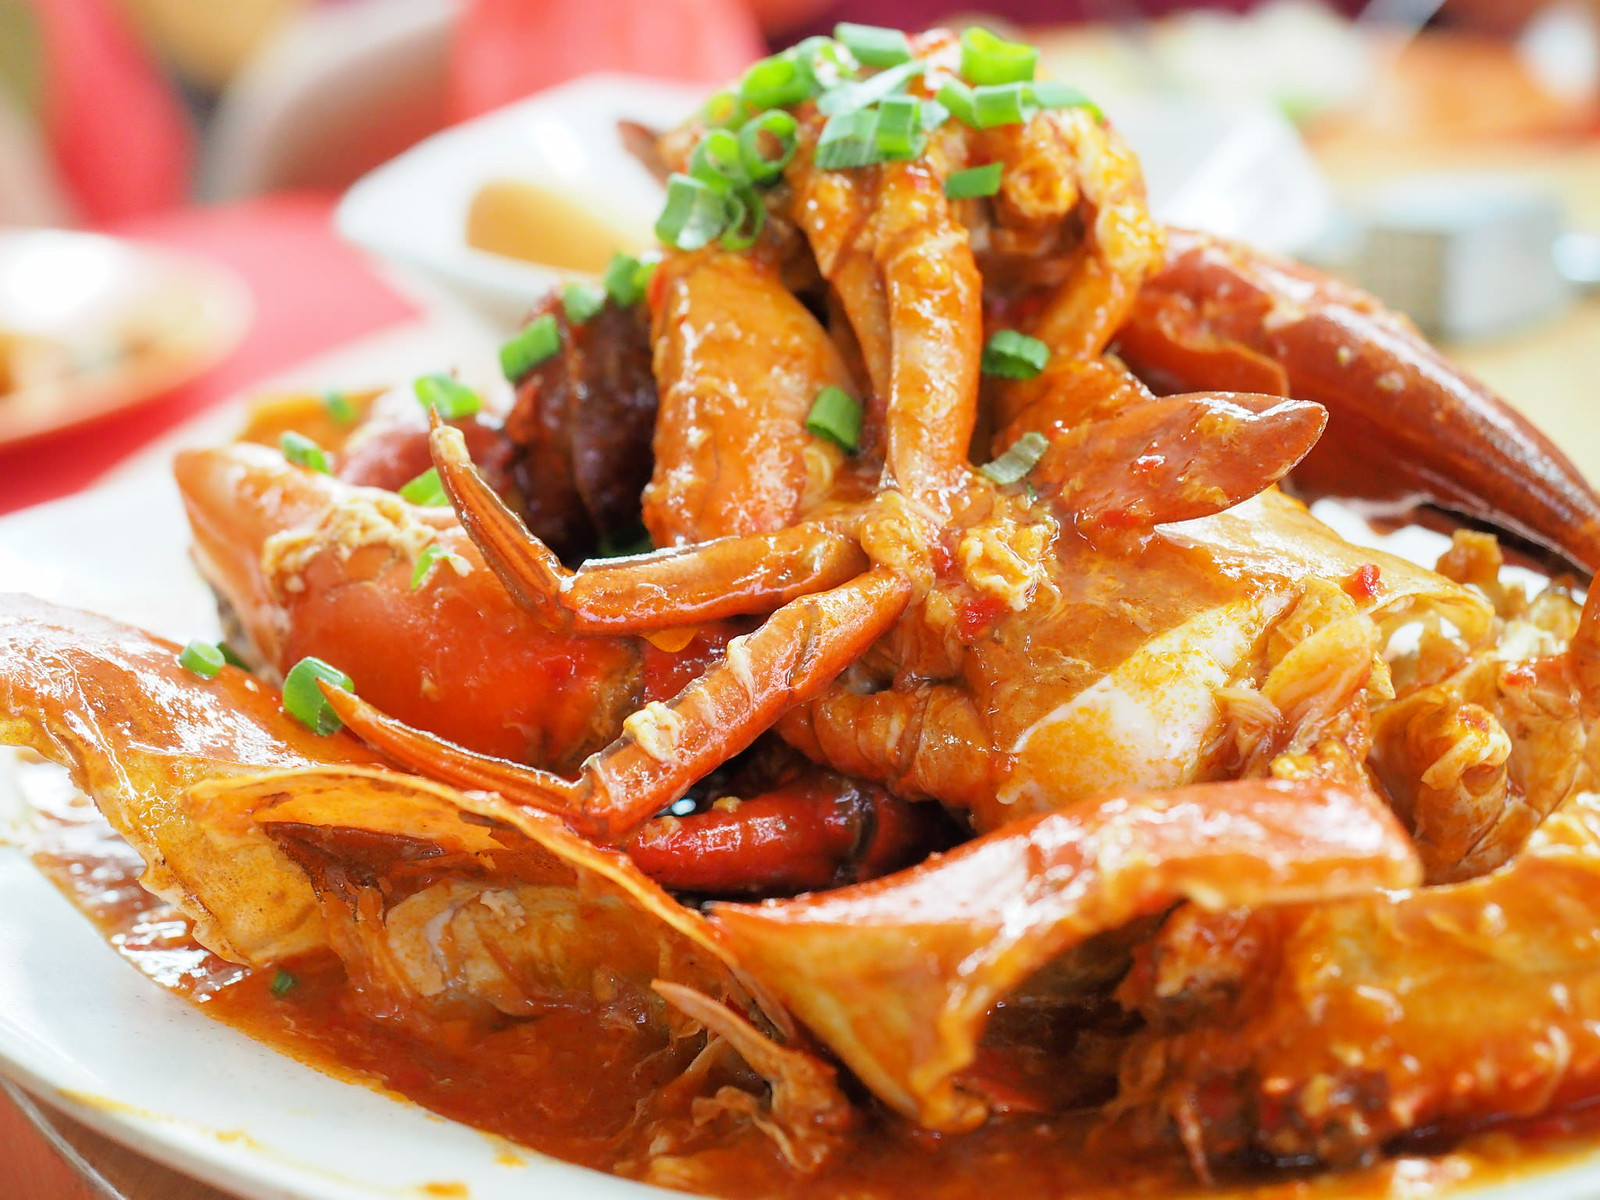 Sweet and Sour crab at Pangkor Village Seafood, Taman Megah